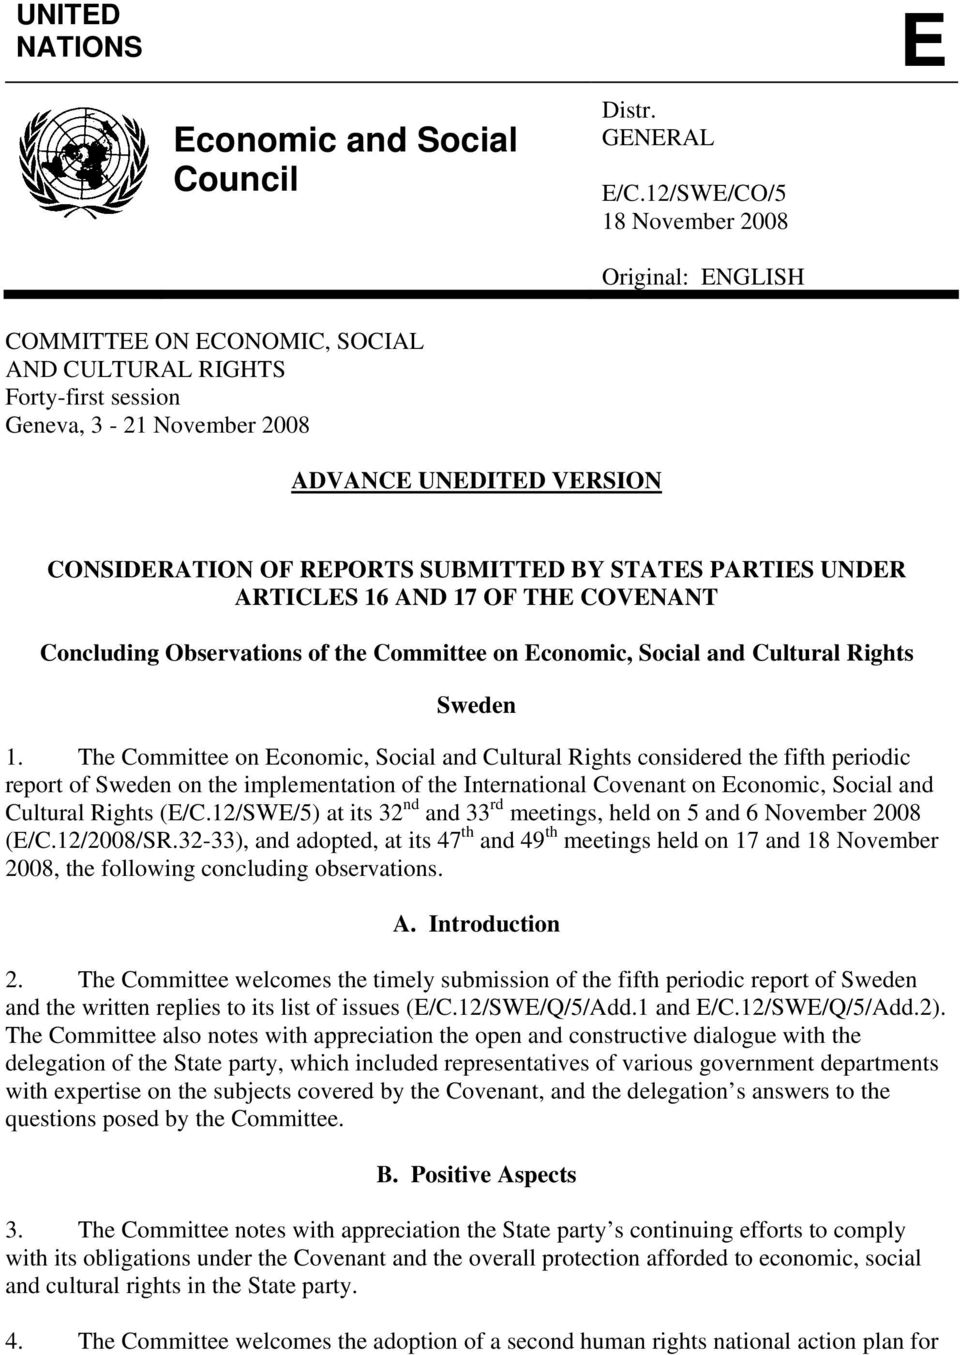 SUBMITTED BY STATES PARTIES UNDER ARTICLES 16 AND 17 OF THE COVENANT Concluding Observations of the Committee on Economic, Social and Cultural Rights Sweden 1.